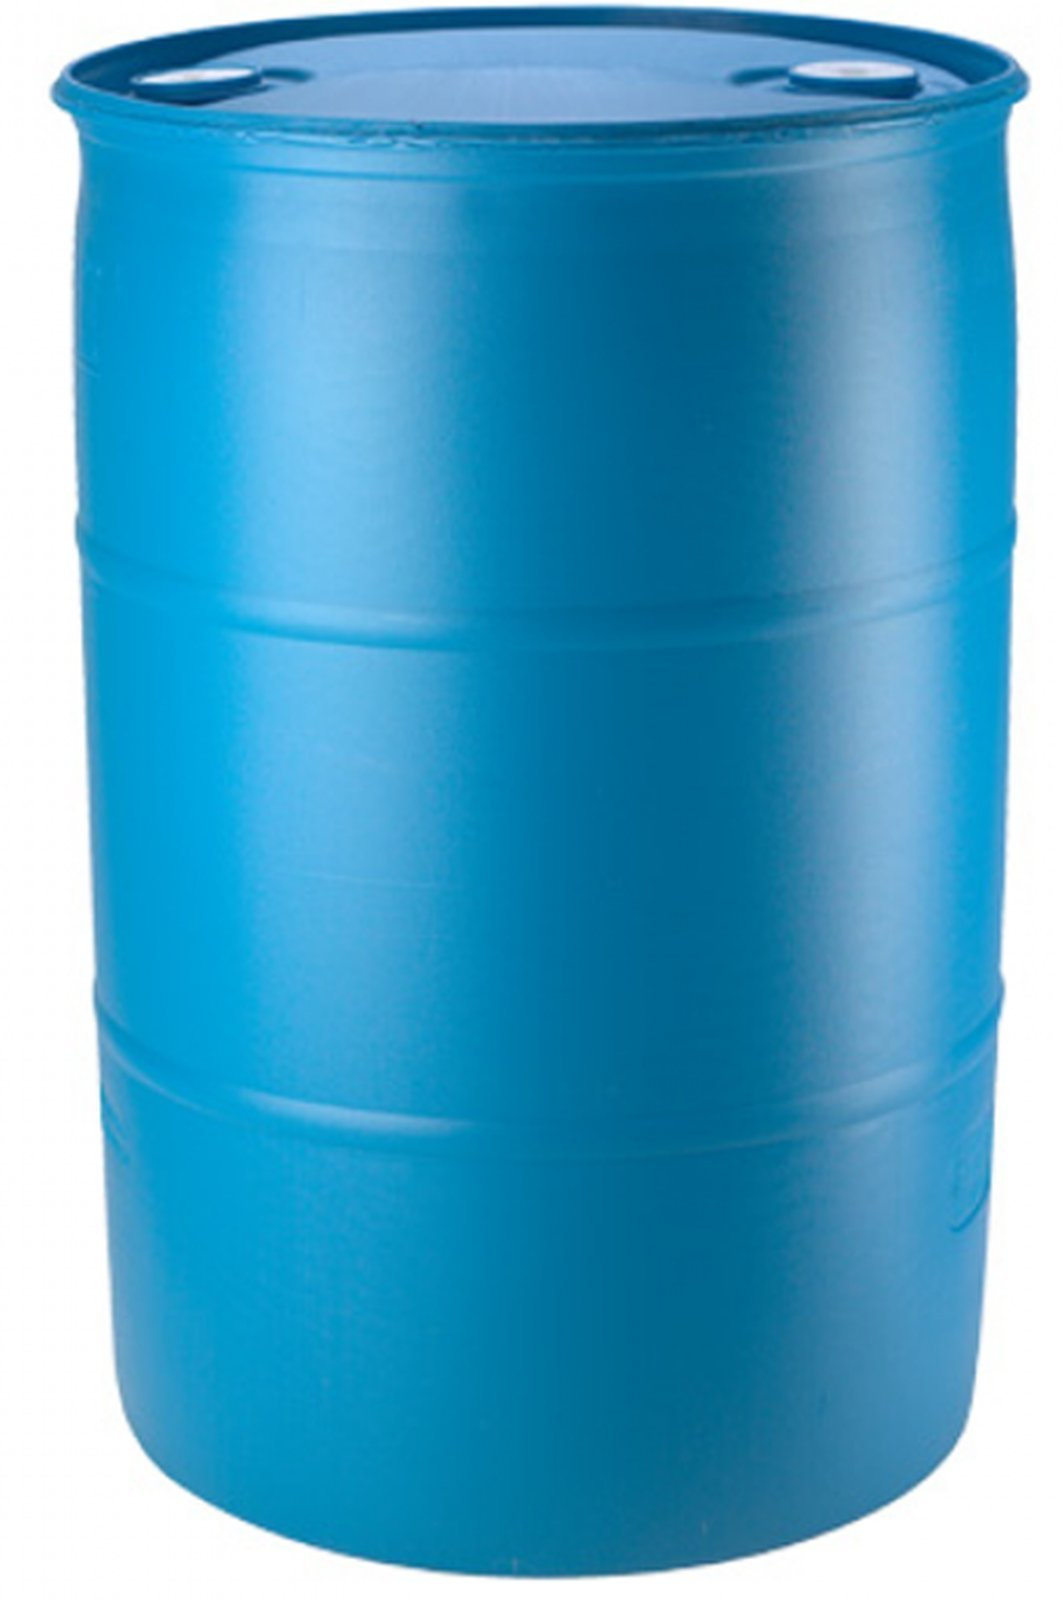 55 Gallon Water Barrel Drum for Fresh Water Storage and Rain Water, Good for Long Term Use. by BayTec Containers